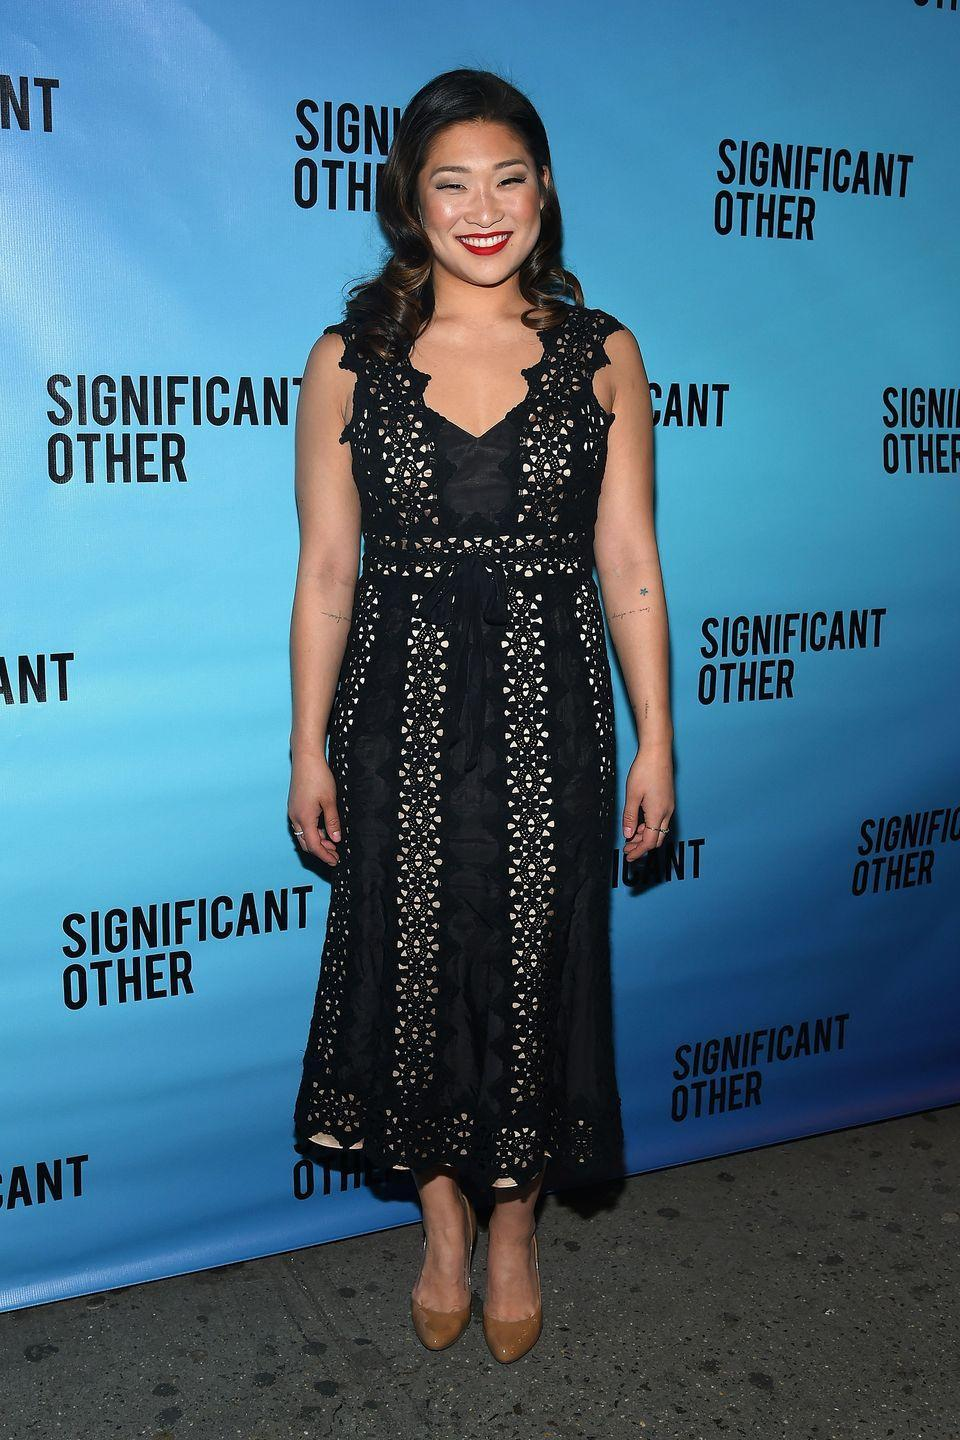 """<p>Tina Cohen-Chang from <em>Glee</em> was born in South Korea and adopted by a New York family when she was 3 months old. She <a href=""""https://www.straitstimes.com/lifestyle/entertainment/positive-look-at-adoption"""" rel=""""nofollow noopener"""" target=""""_blank"""" data-ylk=""""slk:told"""" class=""""link rapid-noclick-resp"""">told </a><em><a href=""""https://www.straitstimes.com/lifestyle/entertainment/positive-look-at-adoption"""" rel=""""nofollow noopener"""" target=""""_blank"""" data-ylk=""""slk:The Straits Times"""" class=""""link rapid-noclick-resp"""">The Straits Times</a></em>, she """"'hadn't had questions' about her biological parents growing up because she felt a strong sense of belonging in her adopted family.""""</p><p>In 2016, she wrote an essay about her positive adoption experience in Melanie Lee's book, <em><a href=""""https://www.goodreads.com/book/show/29534593-how-do-you-get-to-the-garden-galaxy"""" rel=""""nofollow noopener"""" target=""""_blank"""" data-ylk=""""slk:How Do You Get to the Garden Galaxy?"""" class=""""link rapid-noclick-resp"""">How Do You Get to the Garden Galaxy?</a></em>, the fifth in <em>The Adventures of Squirky the Alien</em> series.</p>"""